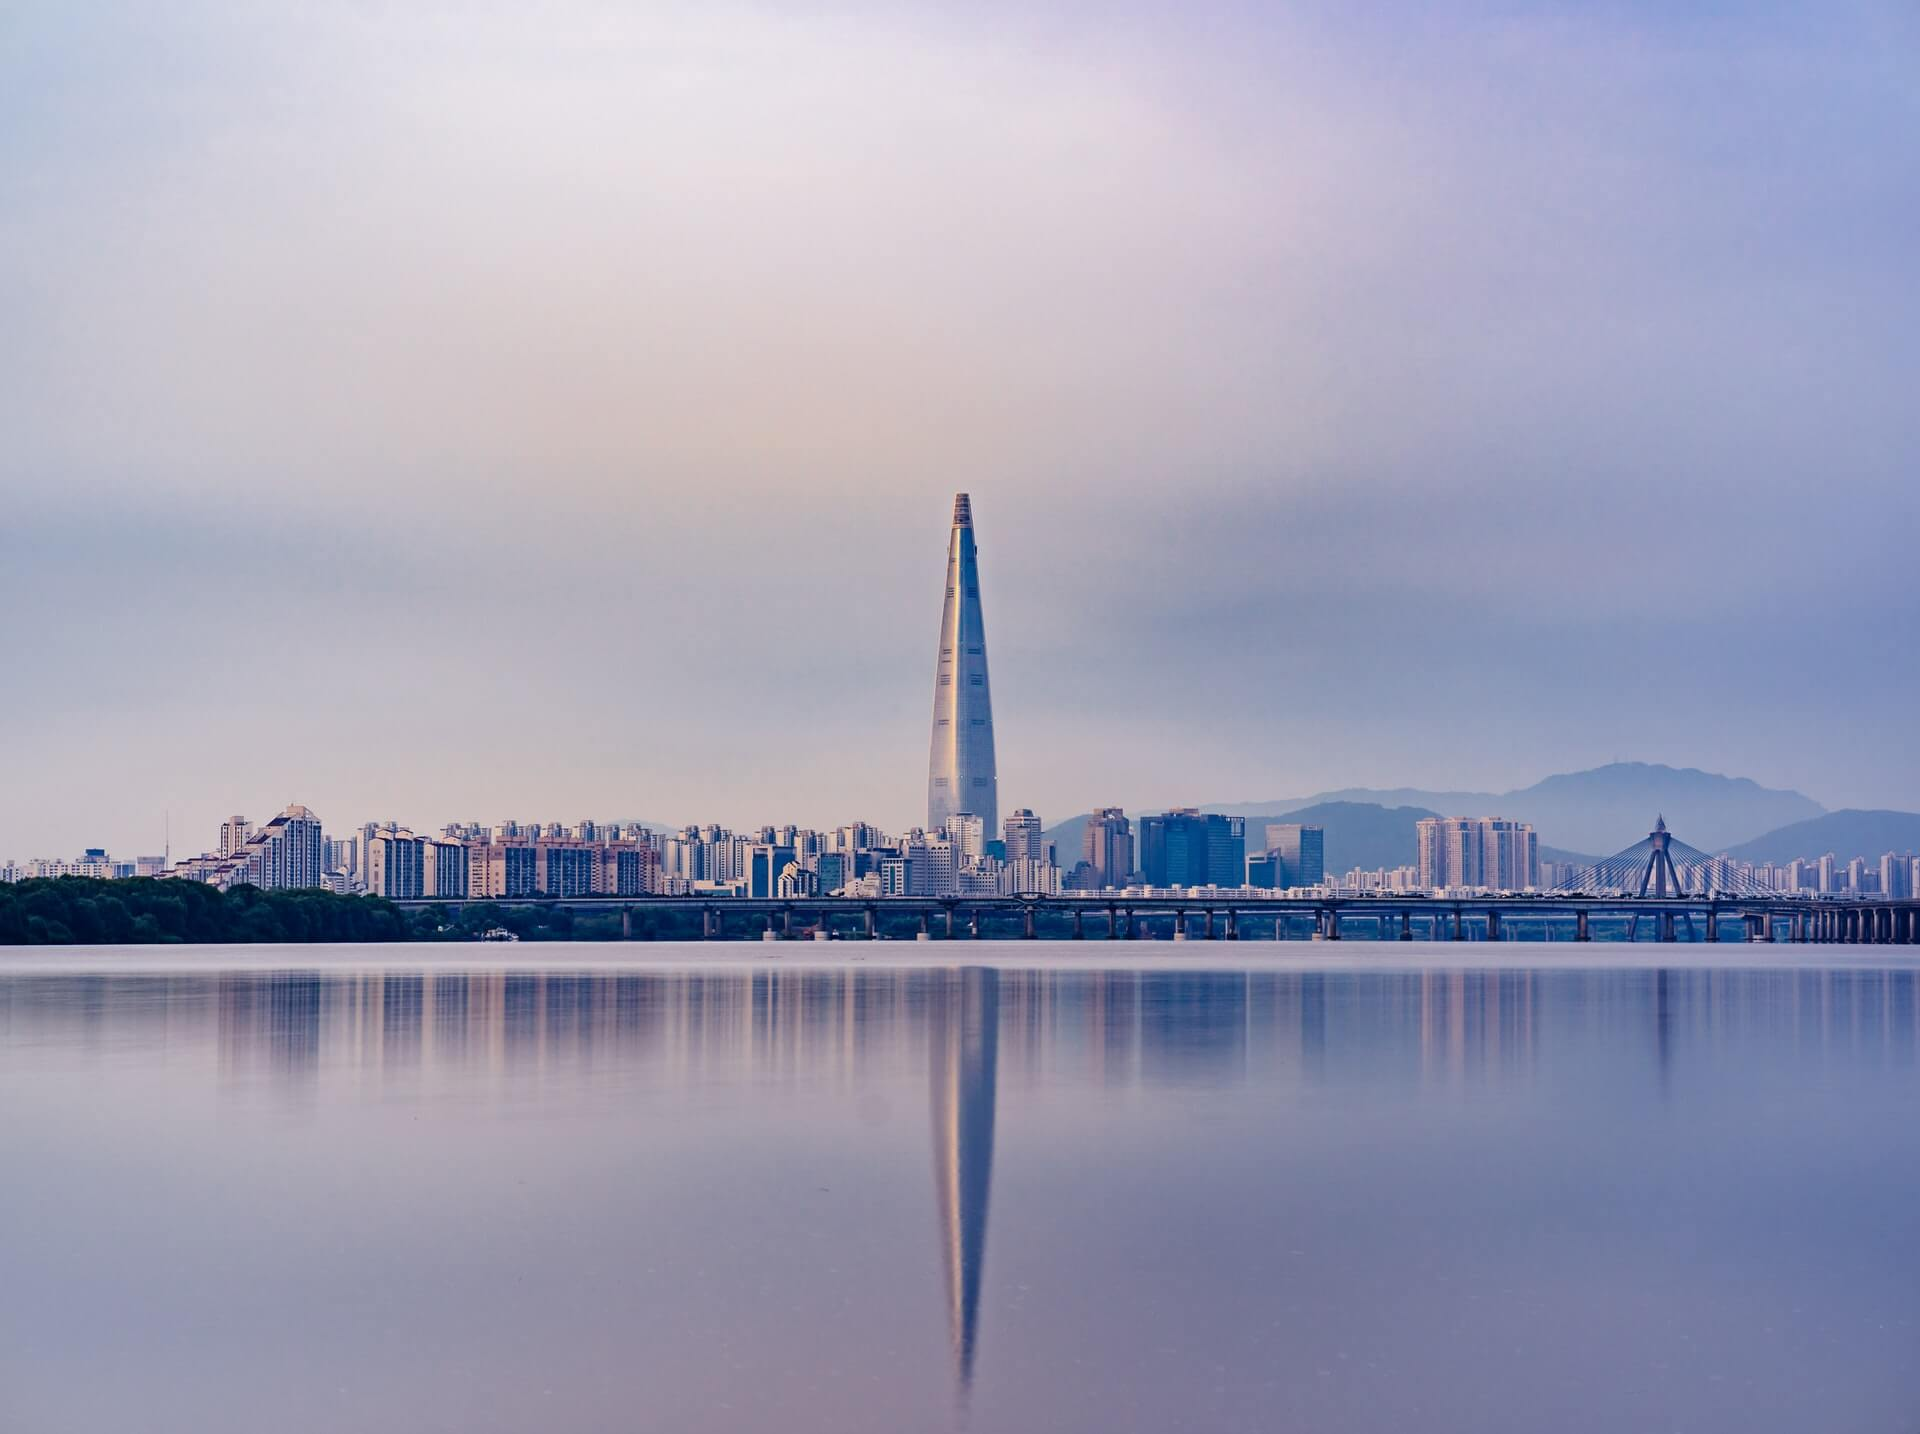 The city skyline of Seoul - major tourist place for working backpackers in South Korea